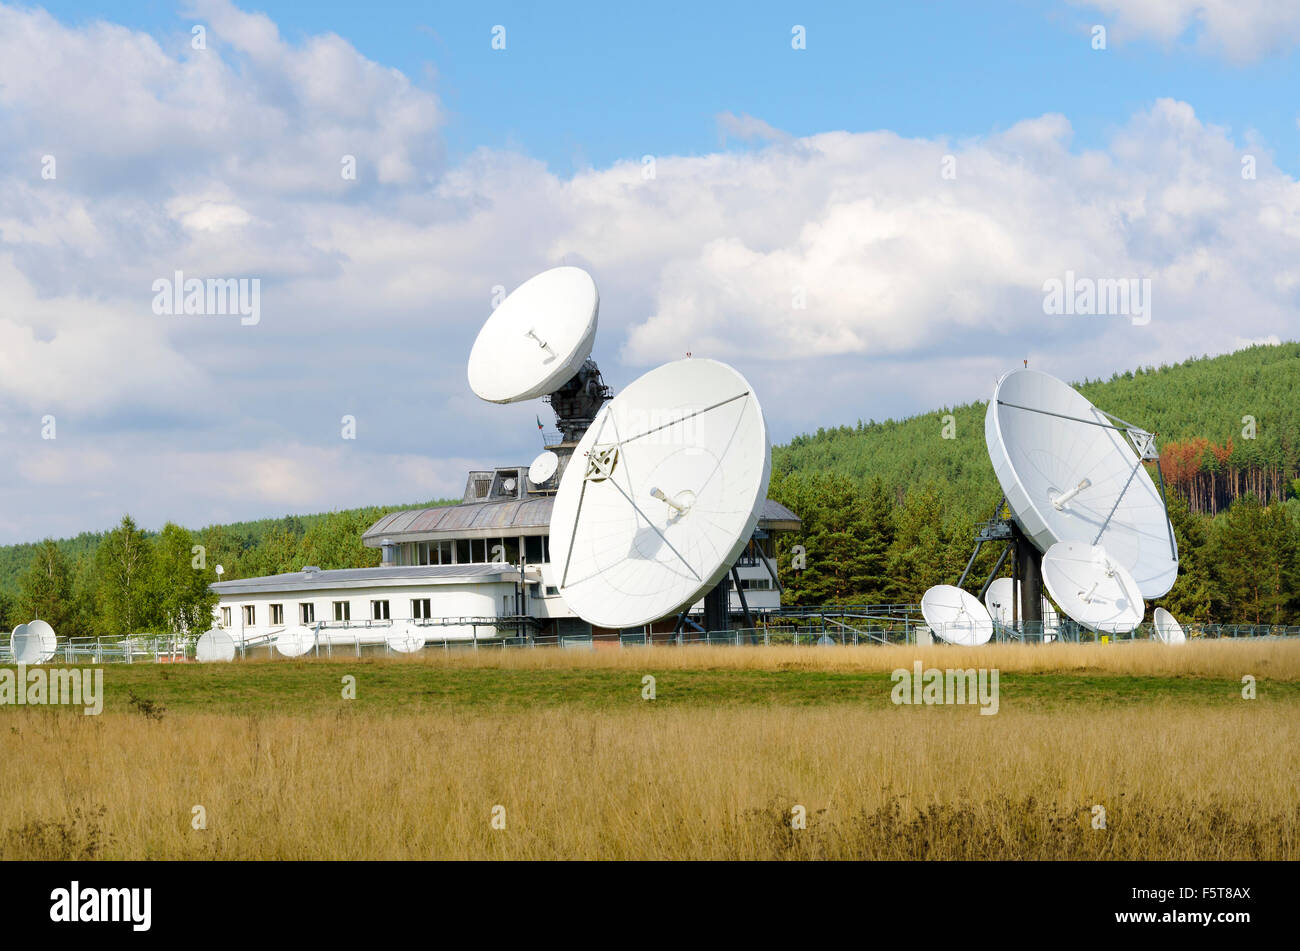 Satellite communication in the field - Stock Image